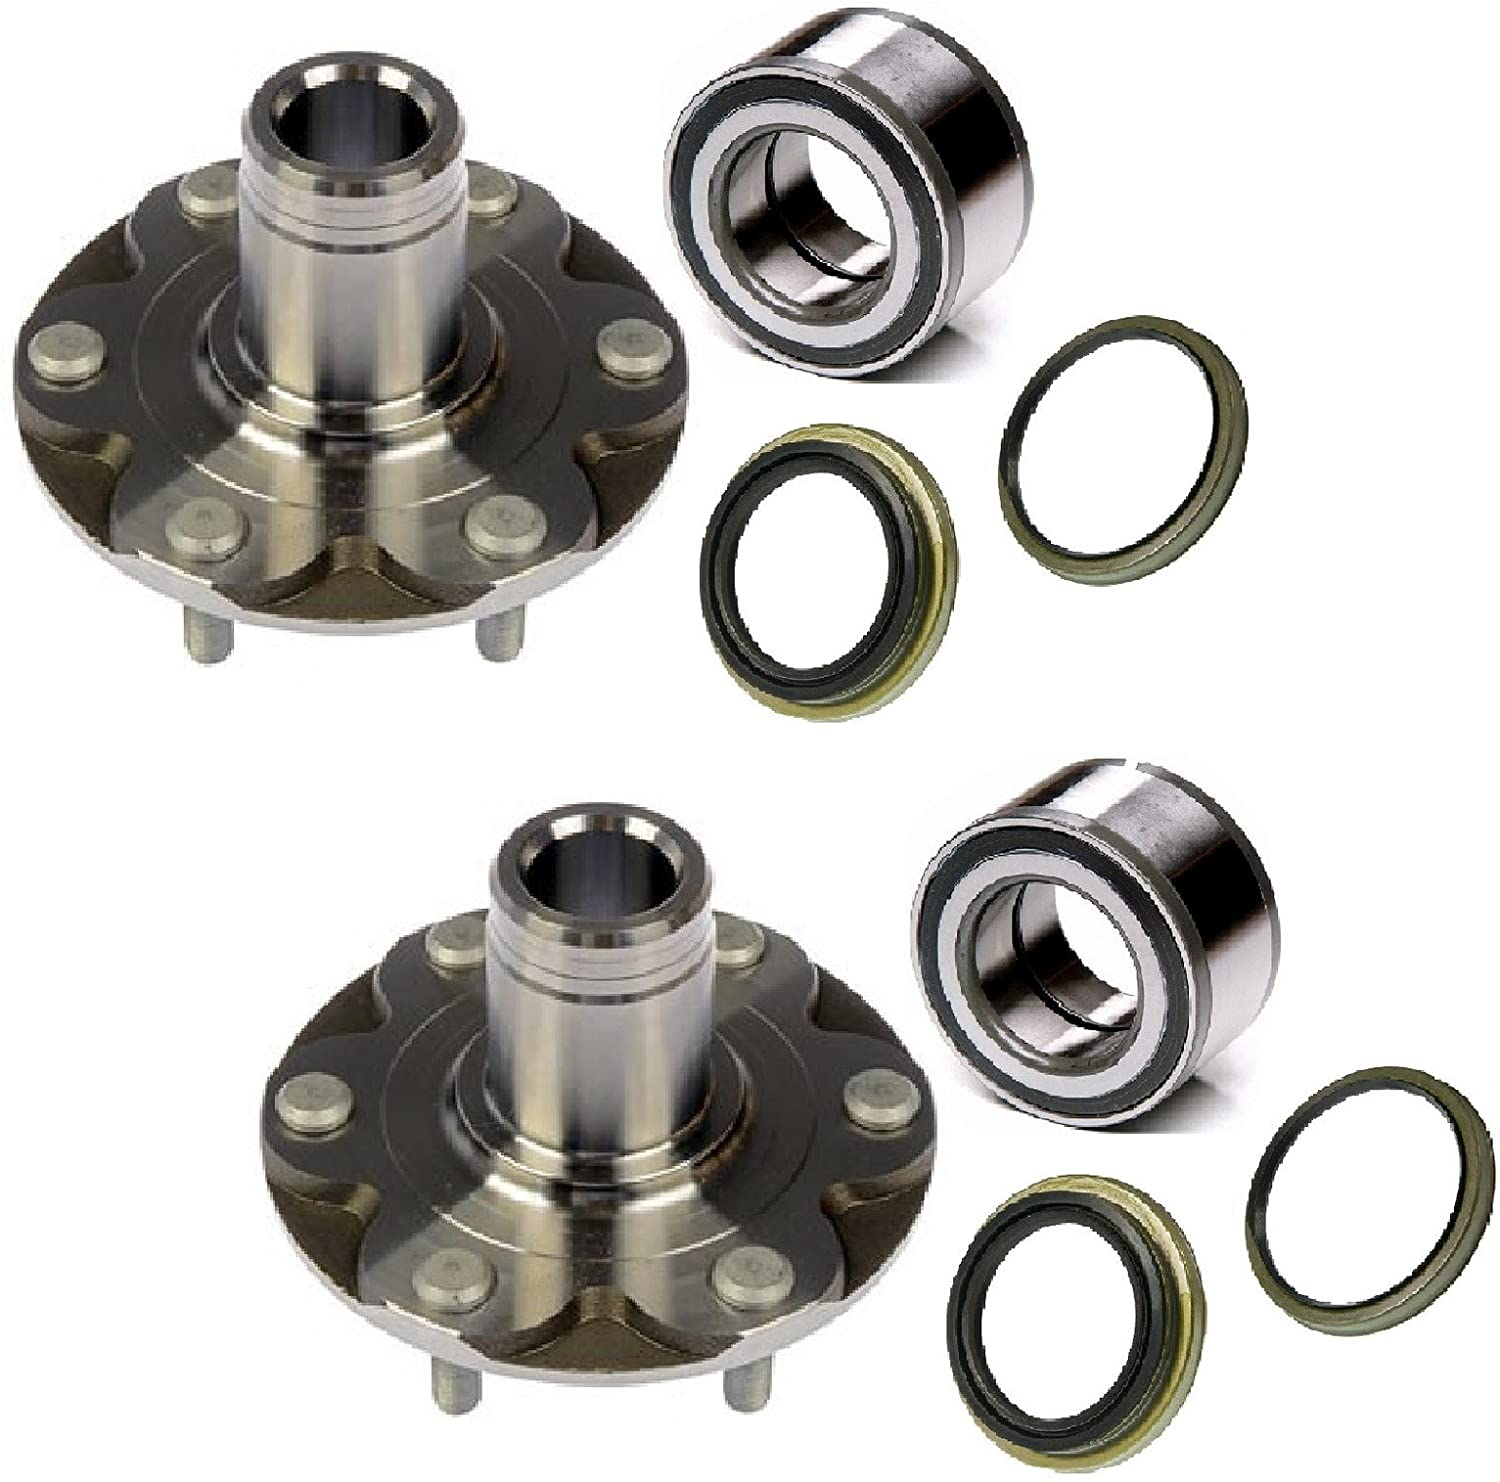 8USAUTO Pair Front Left and Right Wheel Hub and Bearing with Seal fit 2001 2002 2003 2004 Toyota Tacoma 6Lug 4WD, exclude The Wheel hub with Manual Lock on core